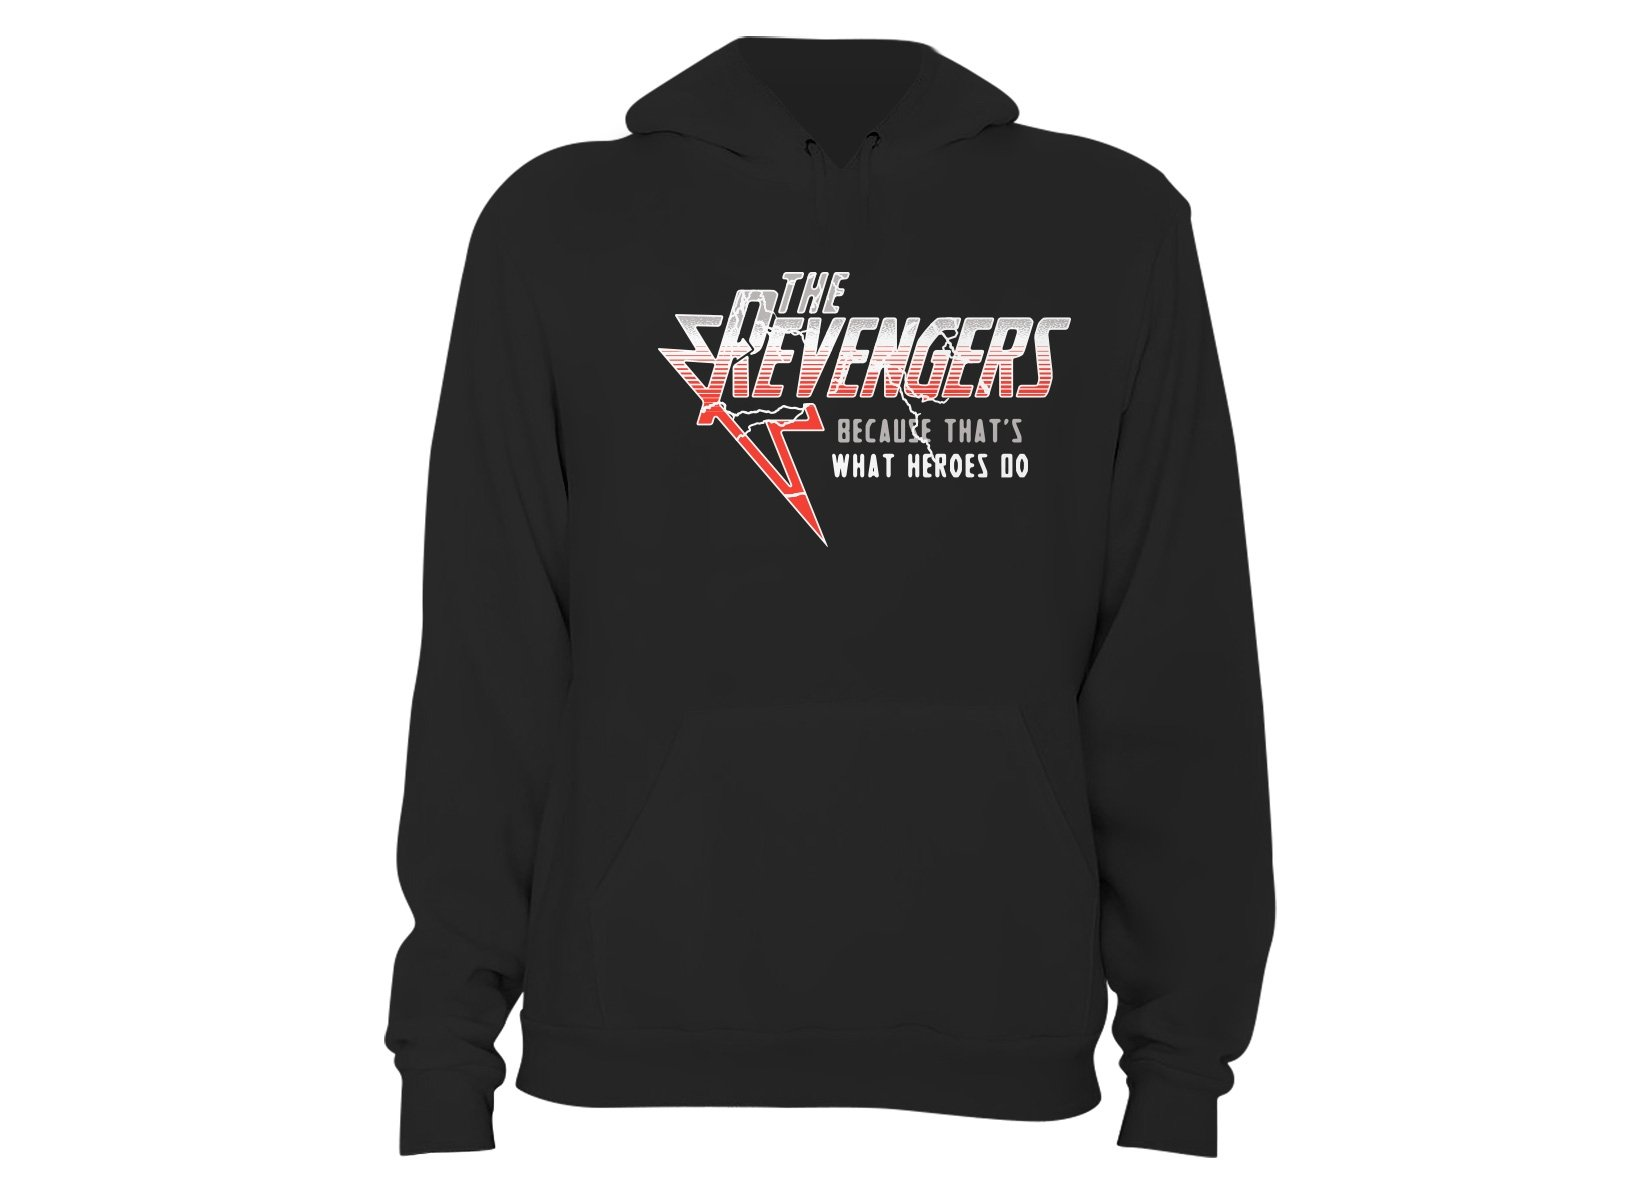 The Revengers on Hoodie